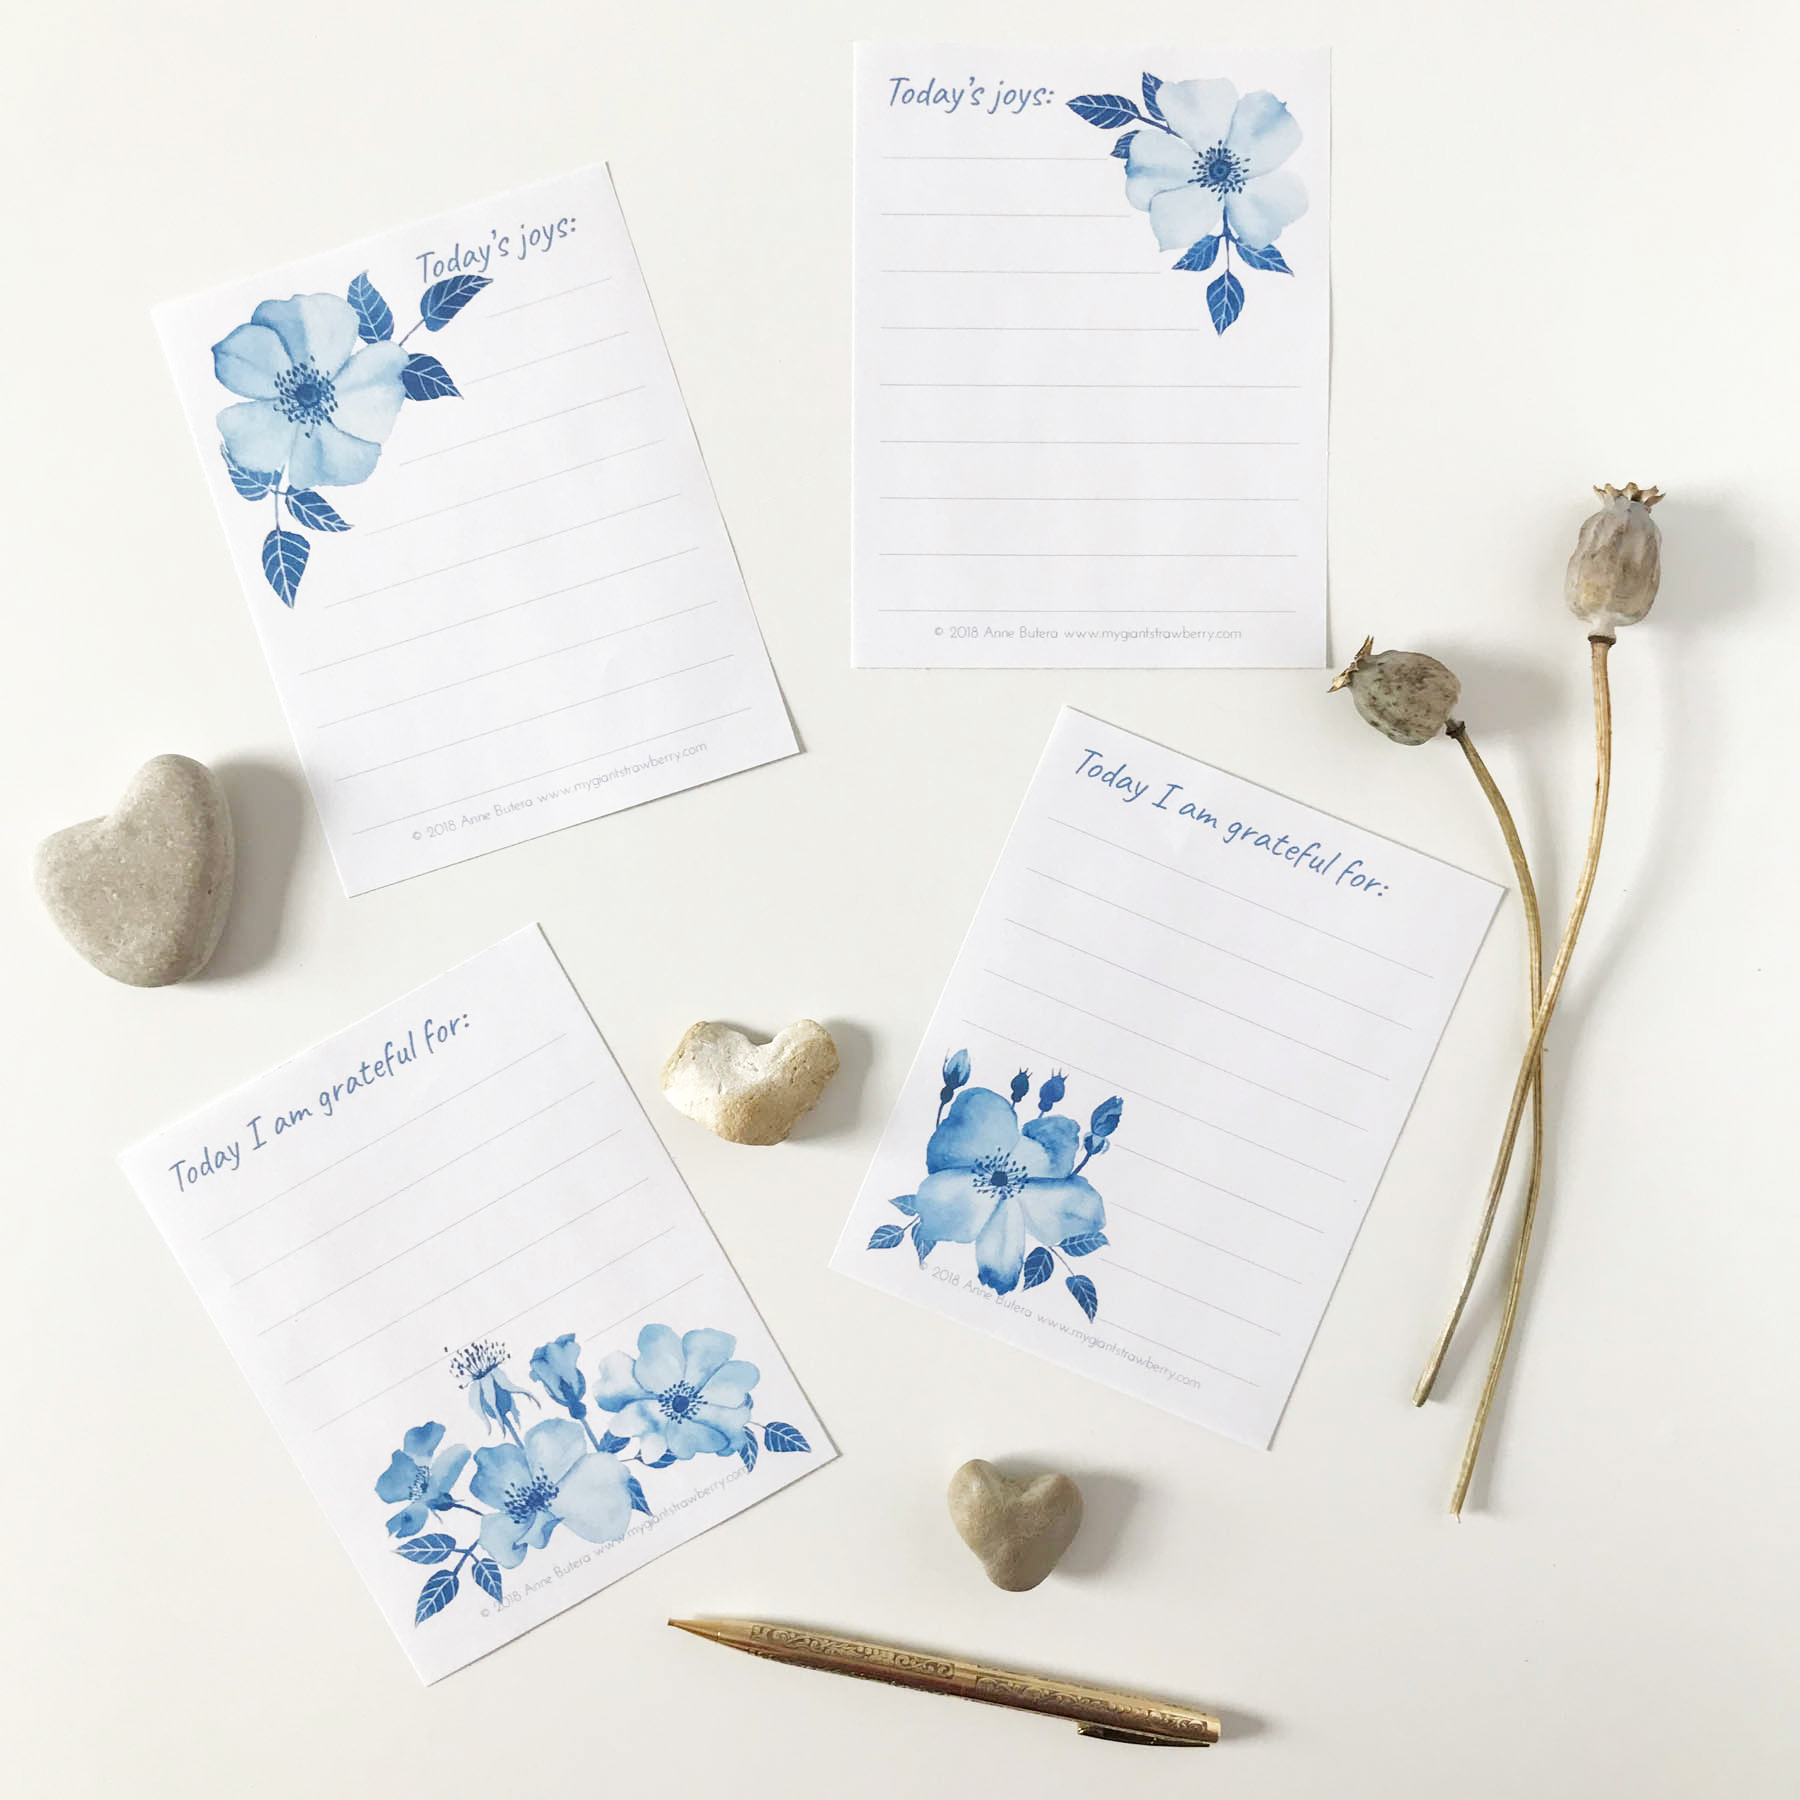 Blue Roses Joy and Gratitude Lists by Anne Butera of My Giant Strawberry